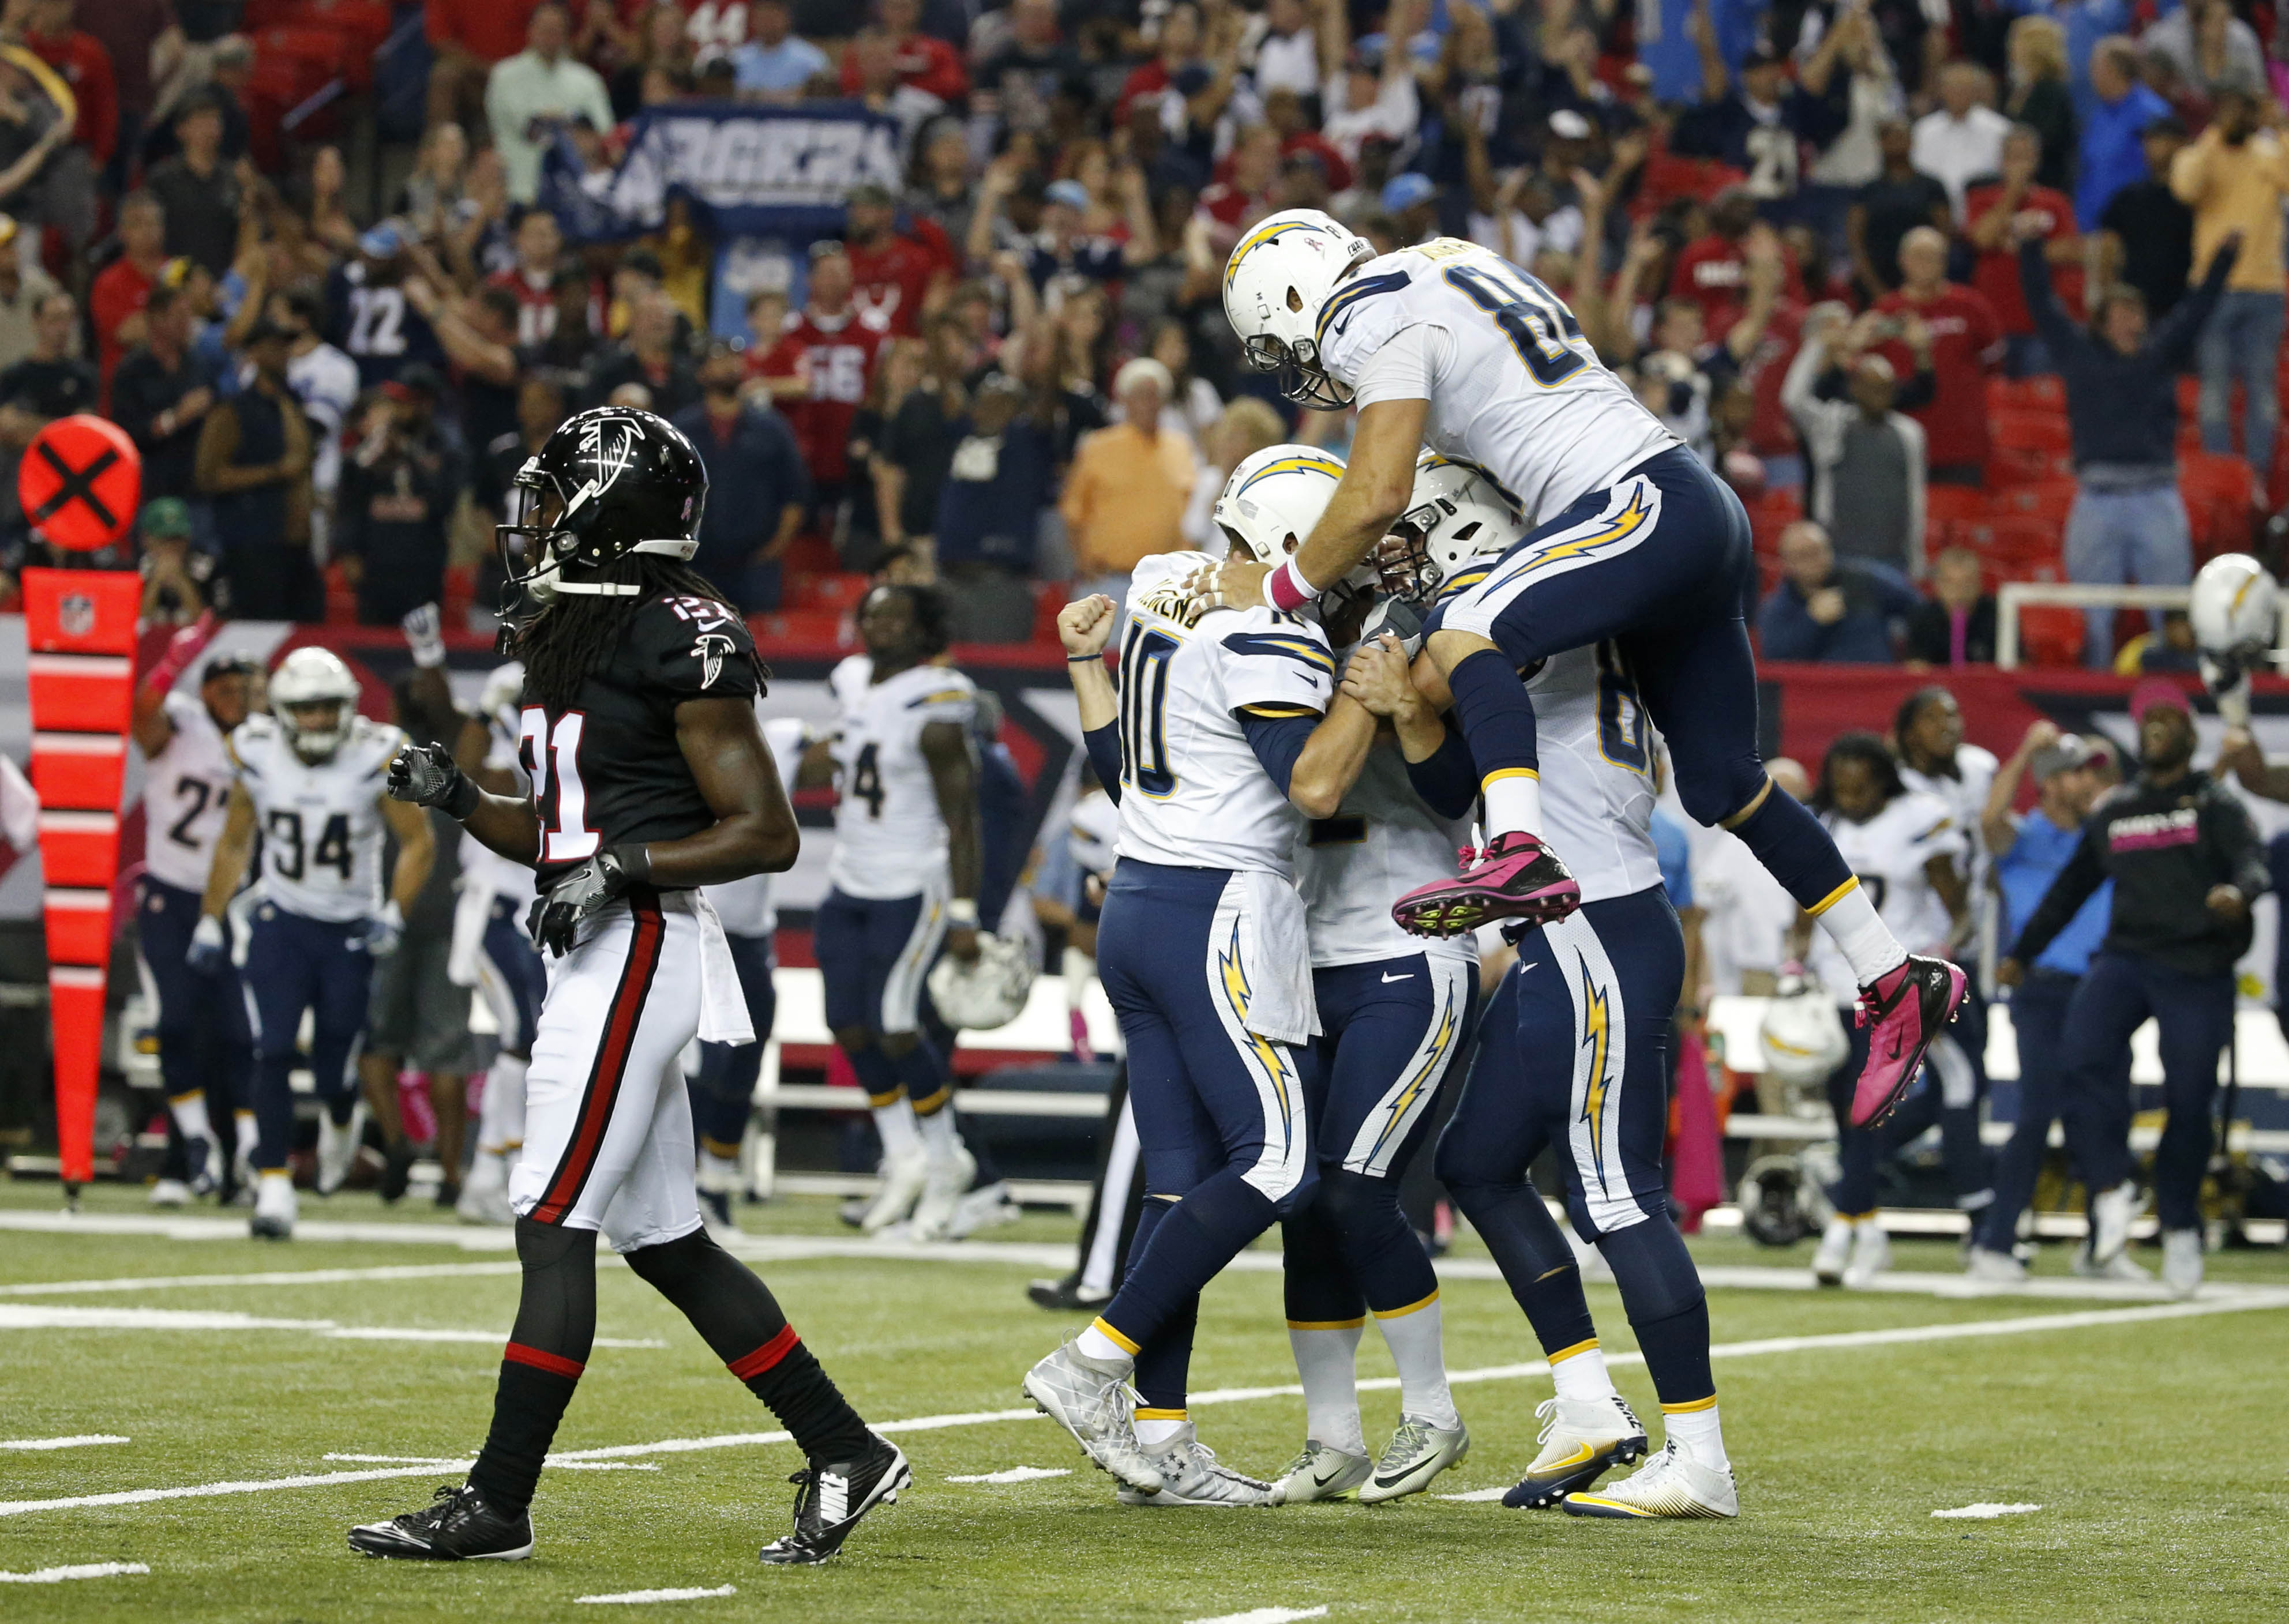 Chargers beat Falcons 33-30 in OT on Lambo's 42-yard FG